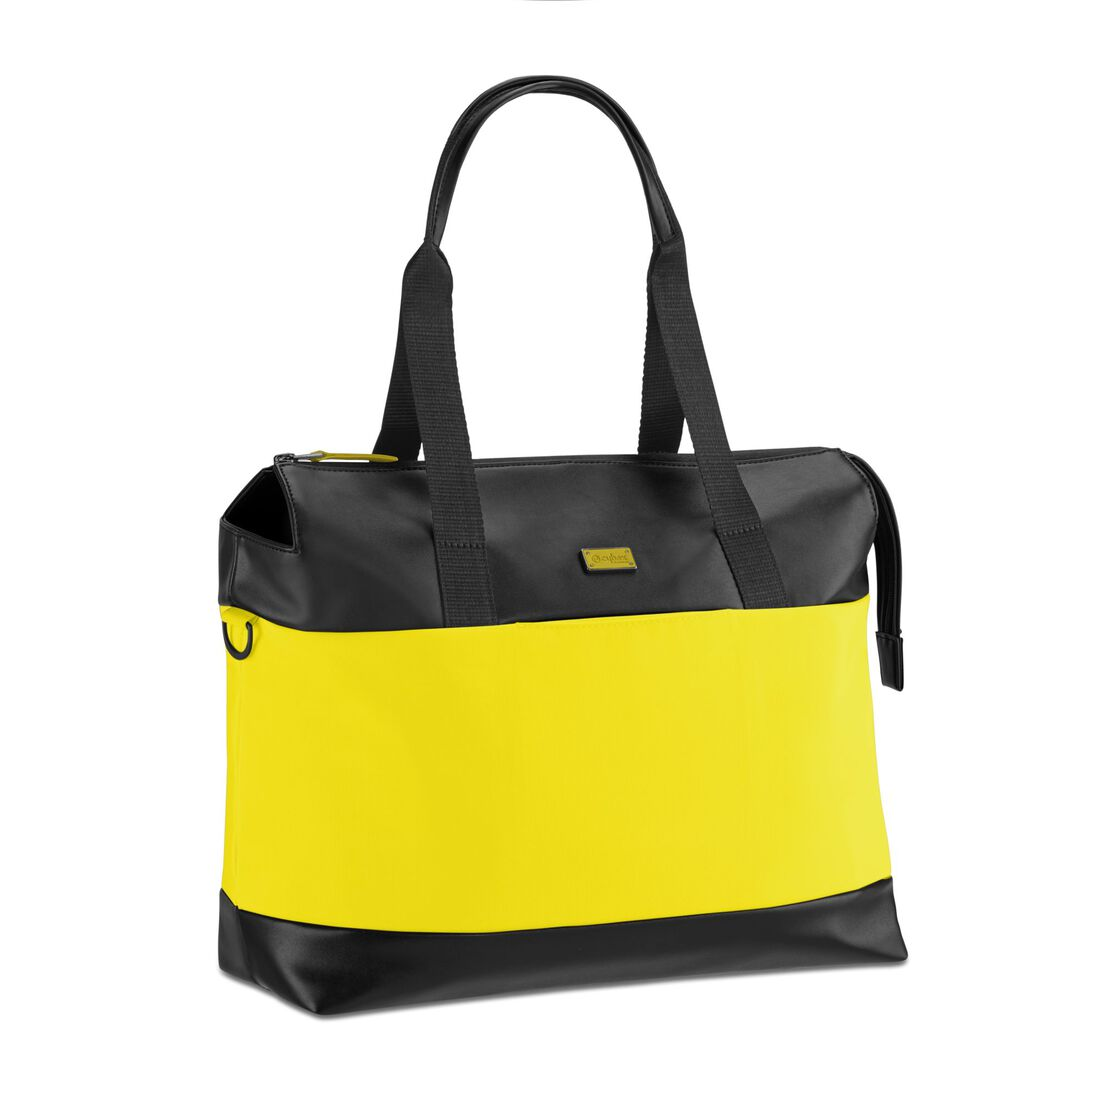 CYBEX Mios Changing Bag - Mustard Yellow in Mustard Yellow large image number 1